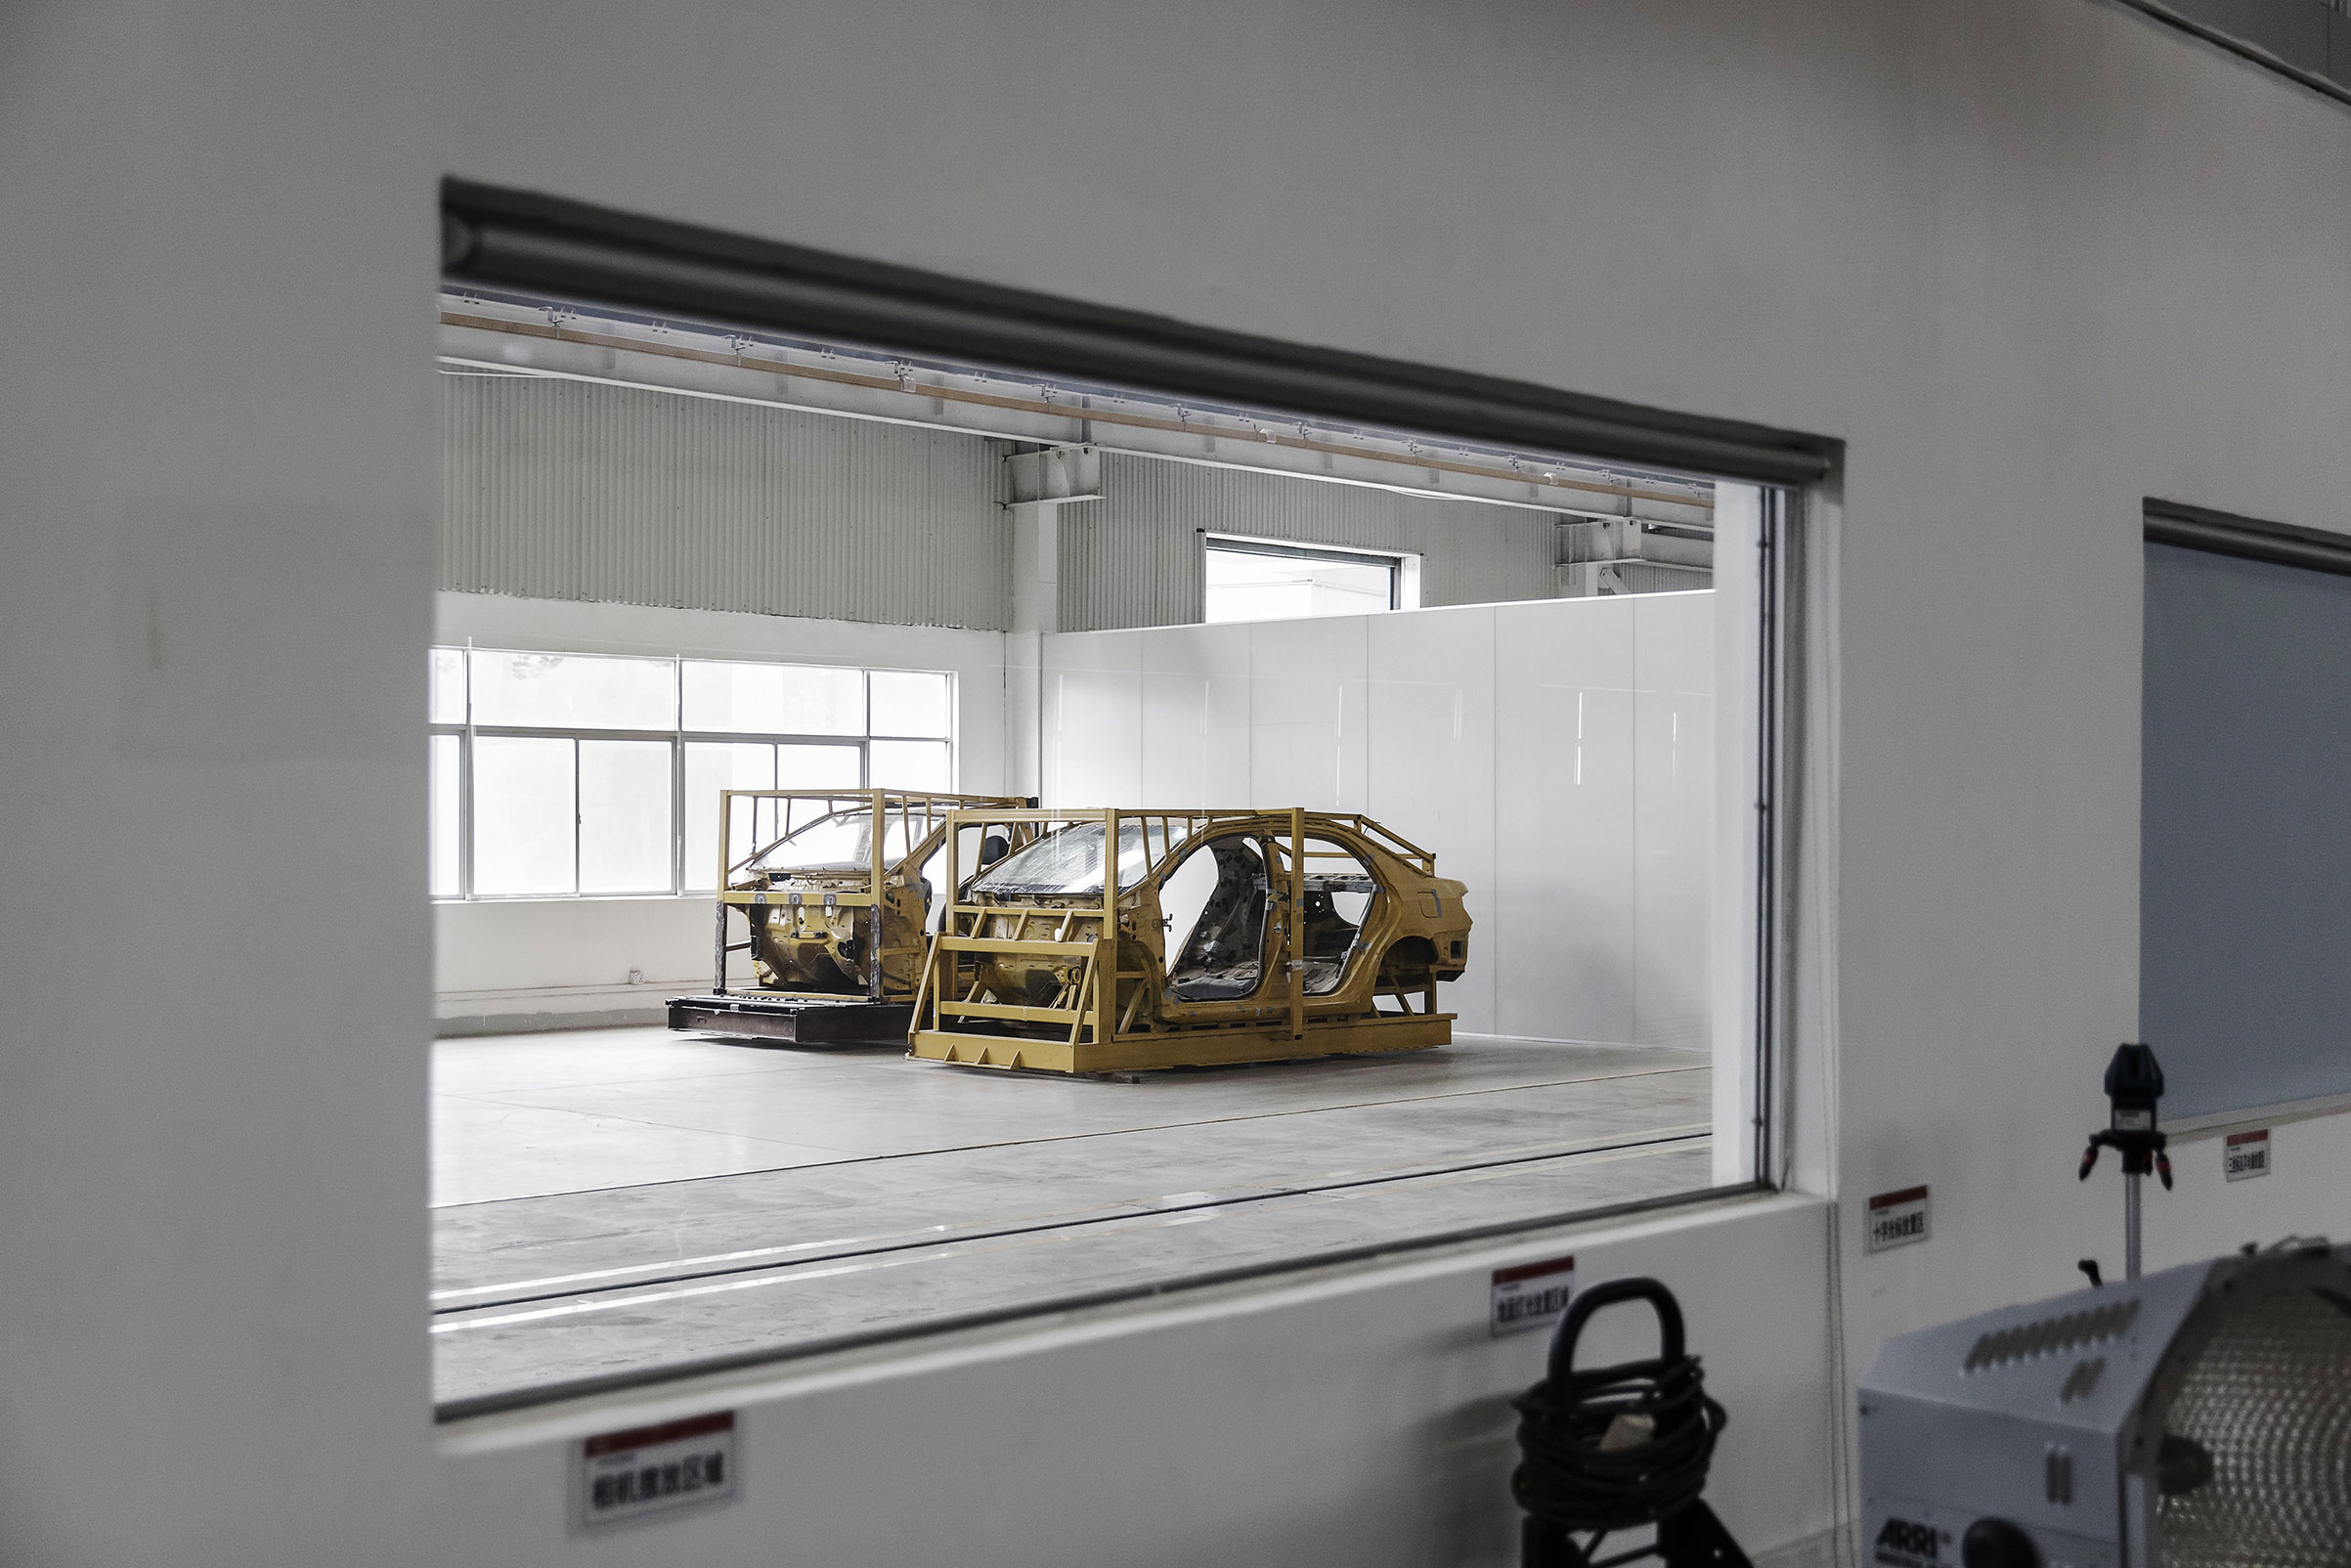 Vehicle frames await testing in leading car­maker BYD's lab in Shenzhen, China